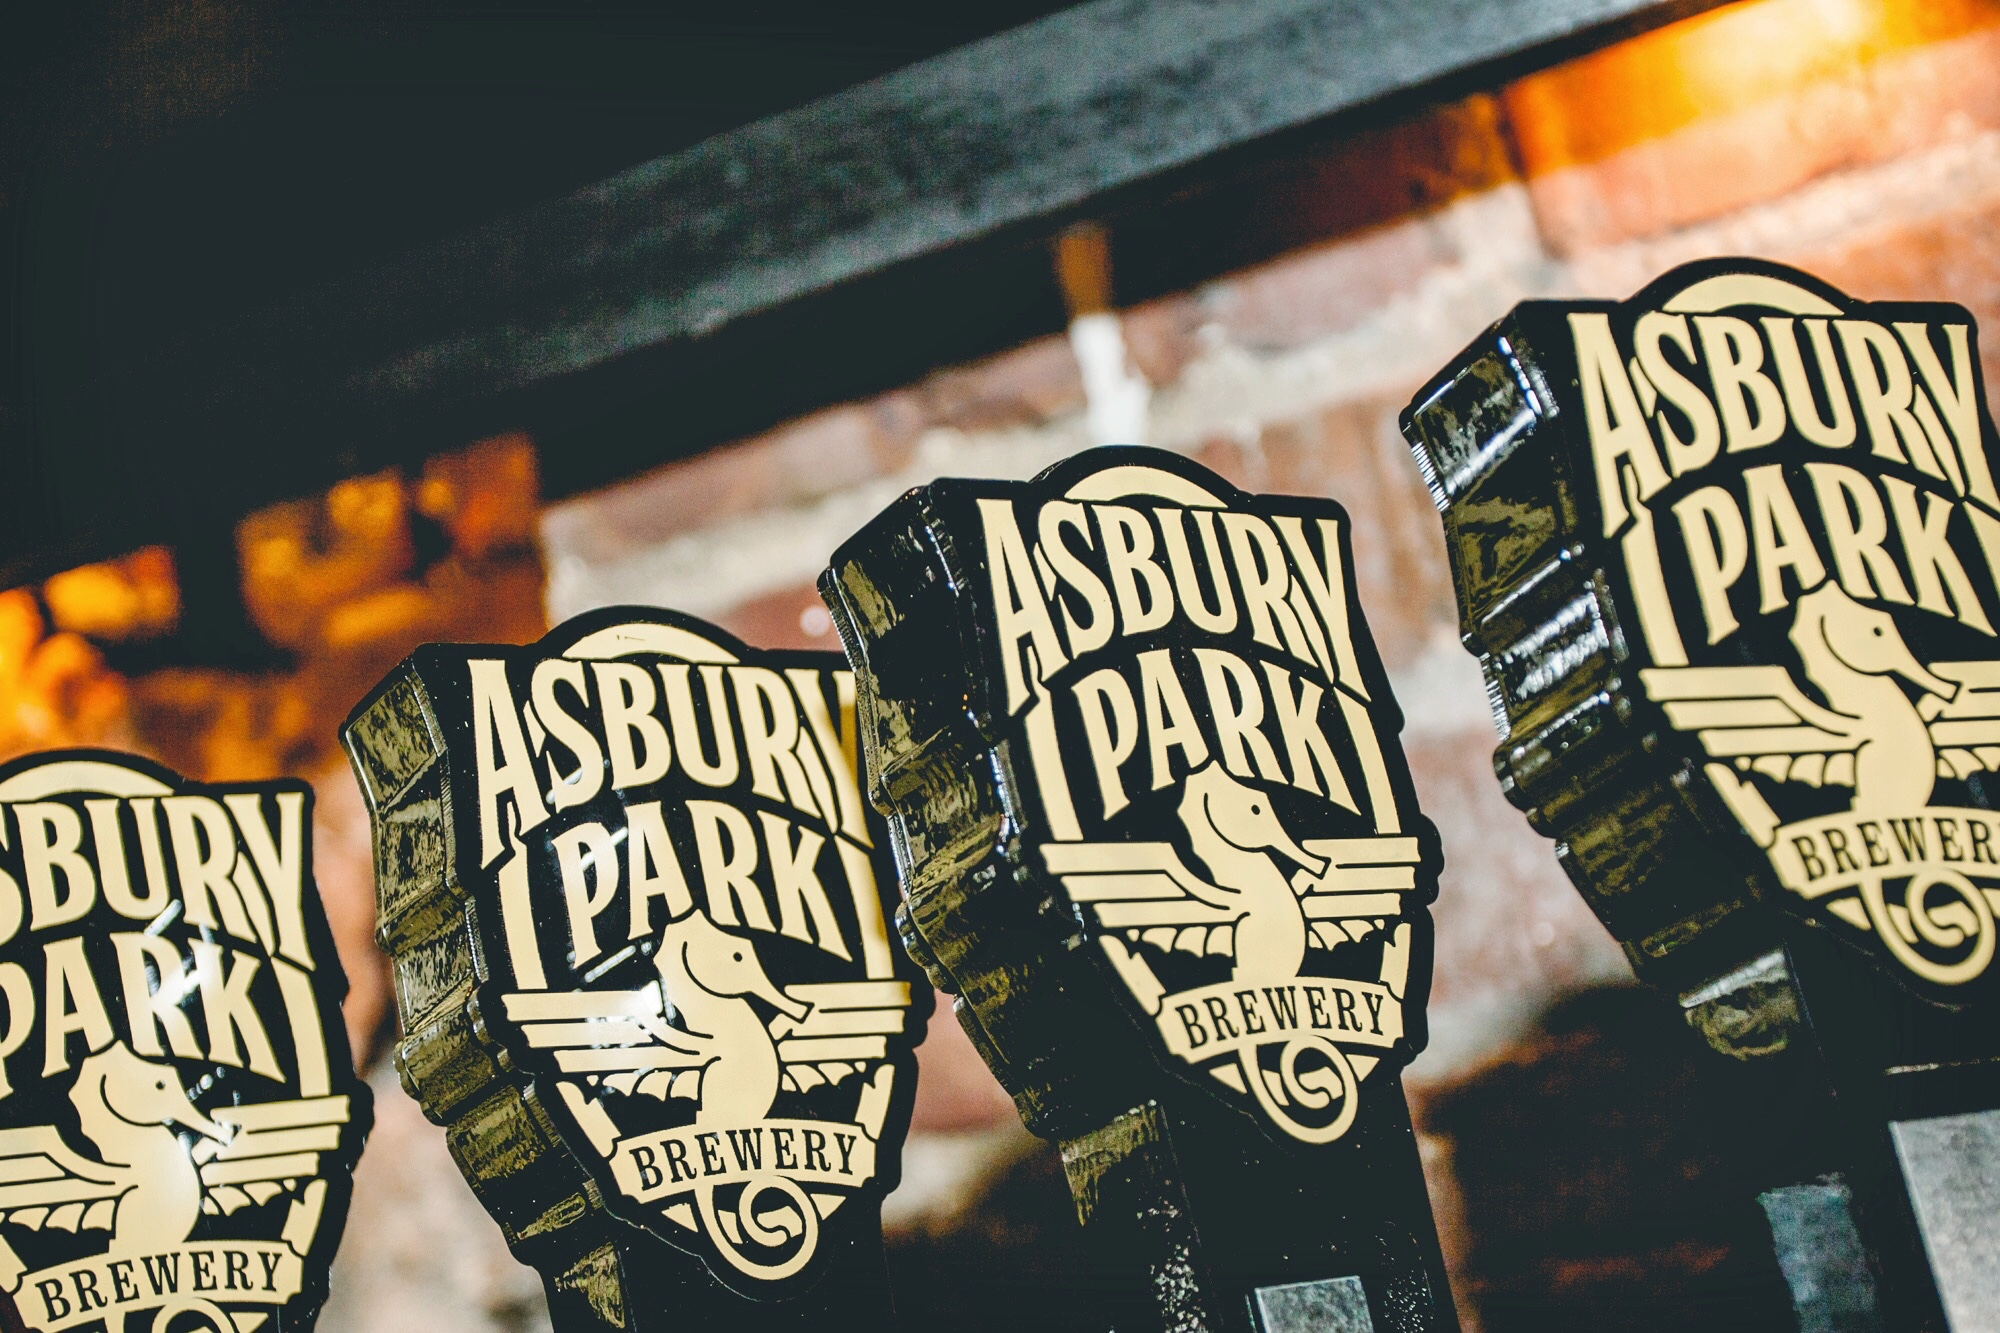 Asbury Park Brewing, Asbury Park - These guys have some amazingly delicious beers - we personally love their extremely sessionable